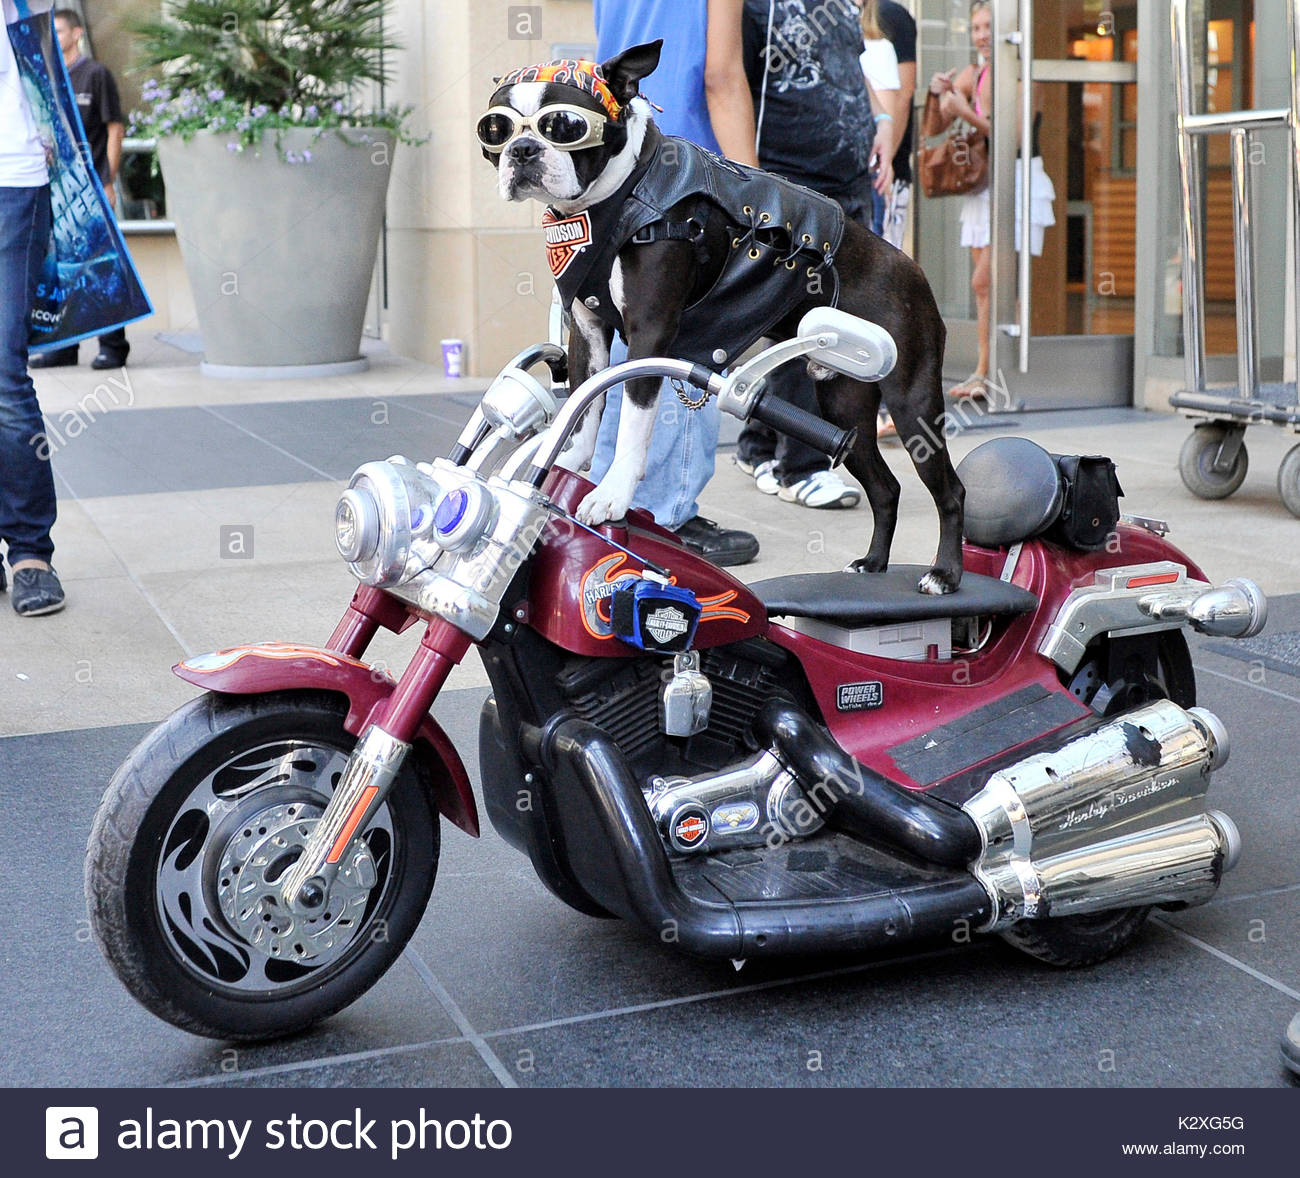 dog on motorcycle stockfotos dog on motorcycle bilder. Black Bedroom Furniture Sets. Home Design Ideas